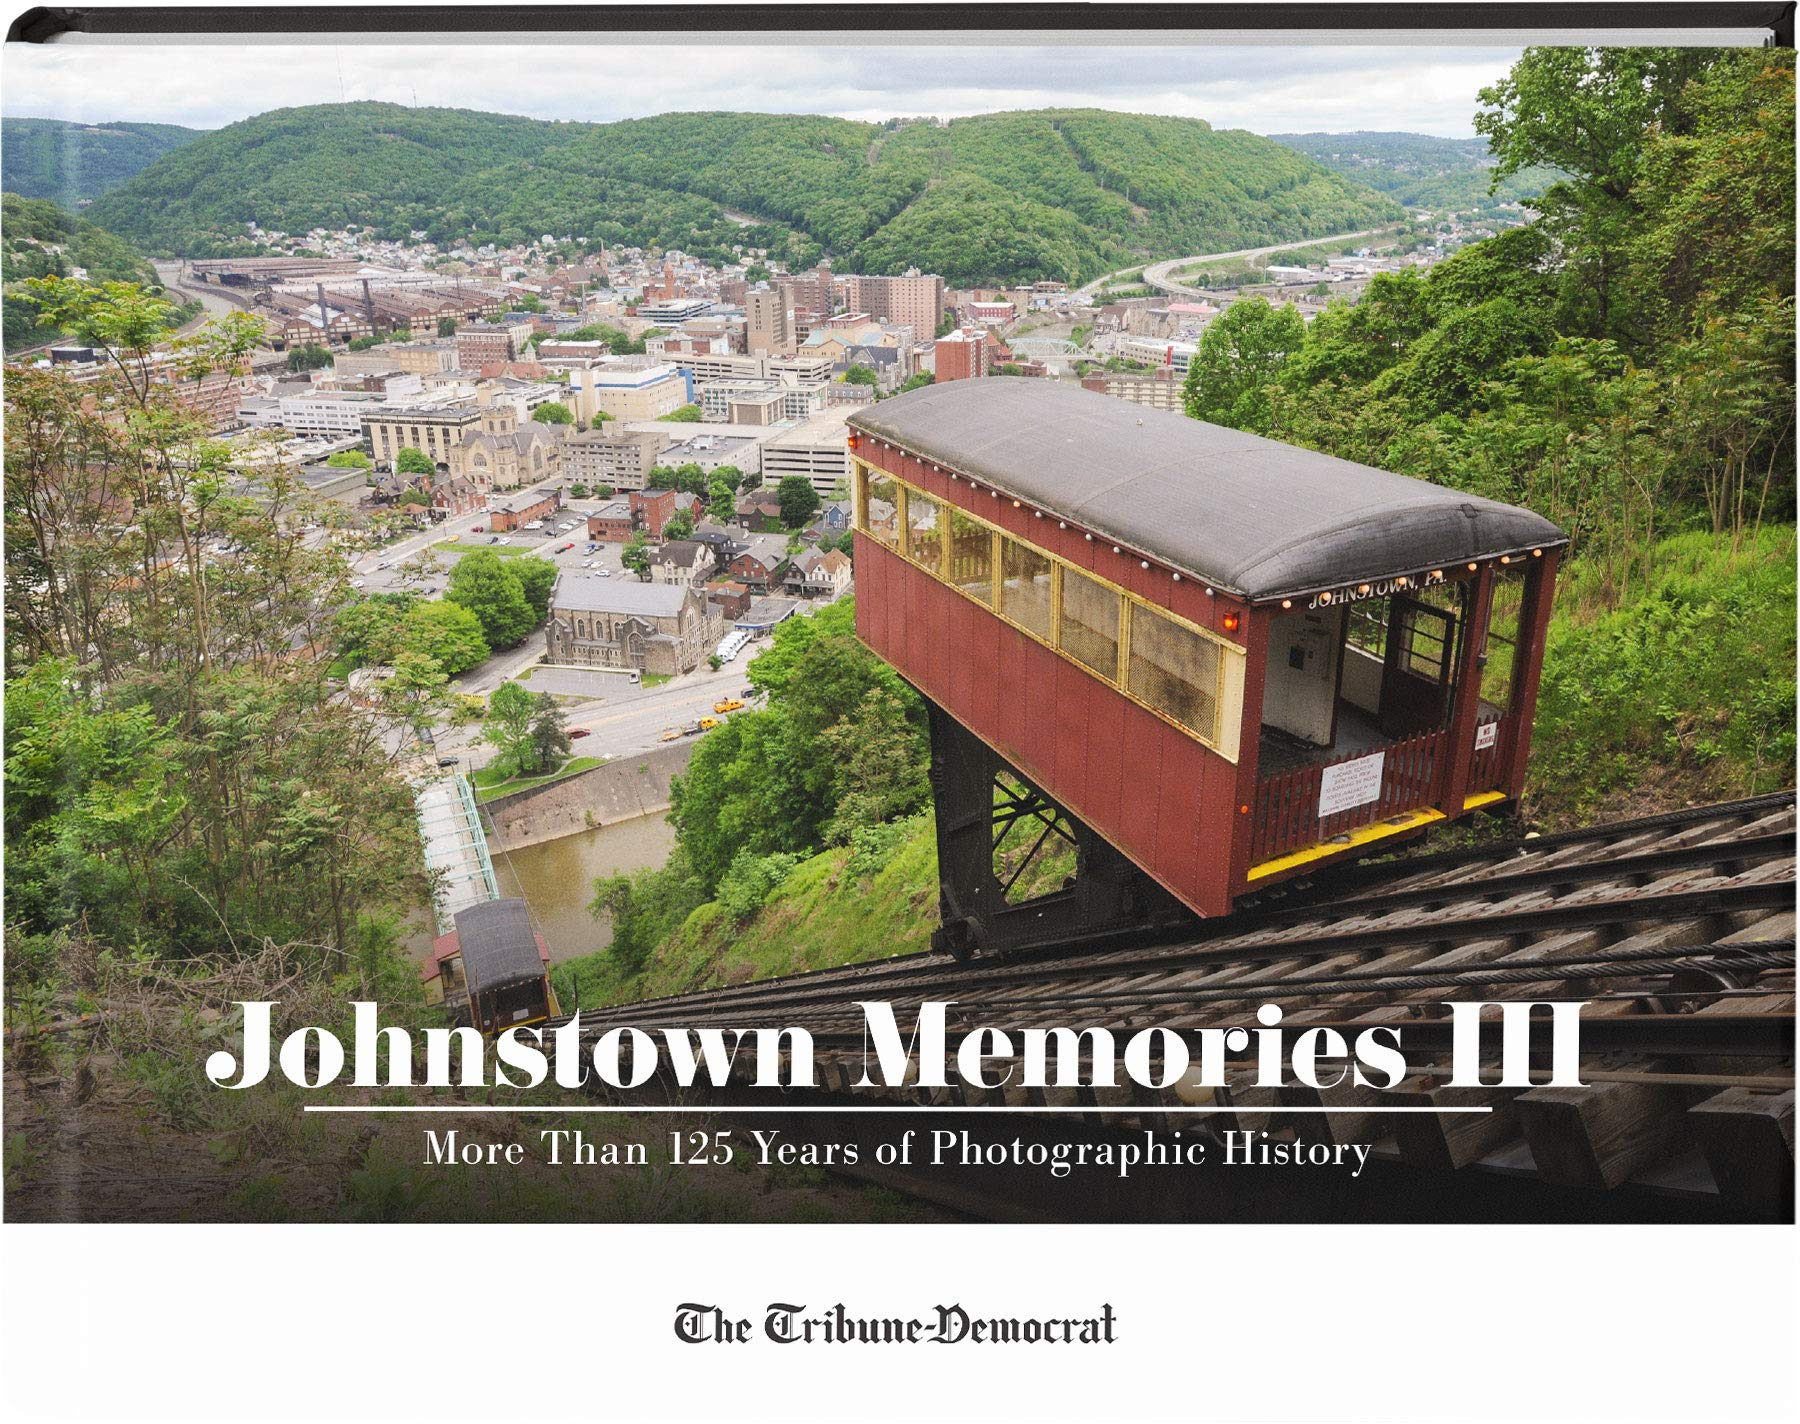 Johnstown Memories III: More Than 125 Years of Photographic History